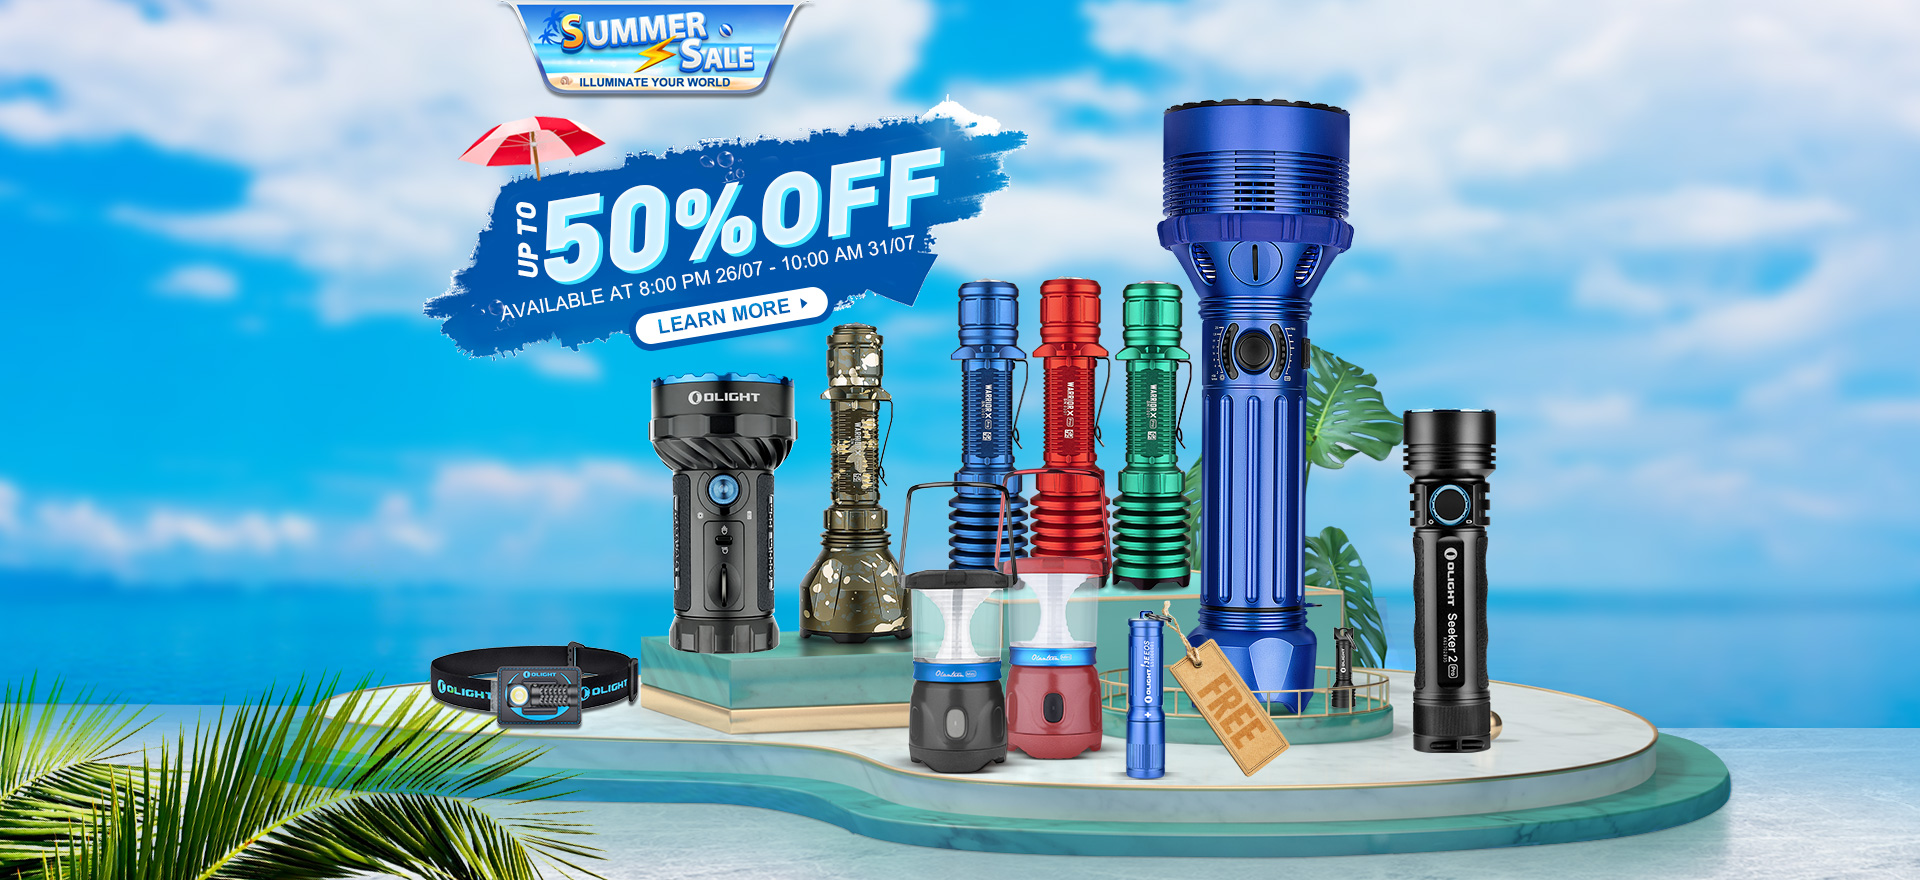 Olight Summer Sale  Buy More, Save More!